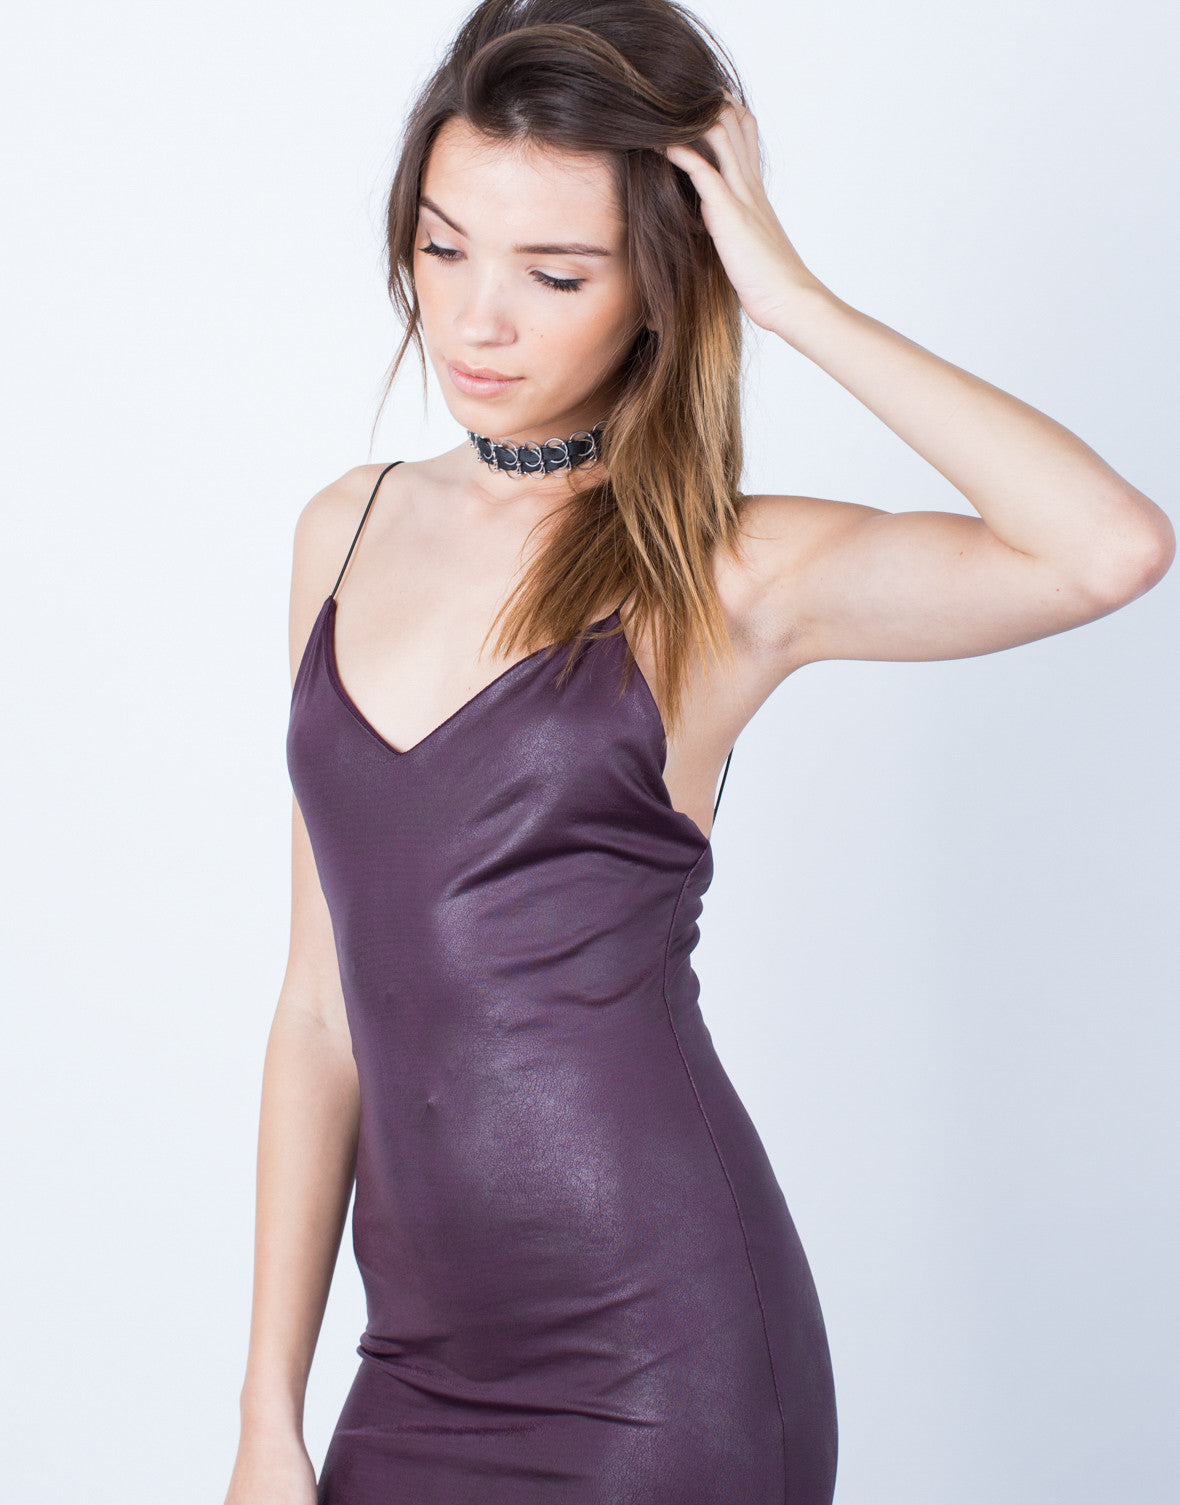 834b879873ad1 Leather Effect Midi Dress - Little Black Dress - Leather Cami Party ...